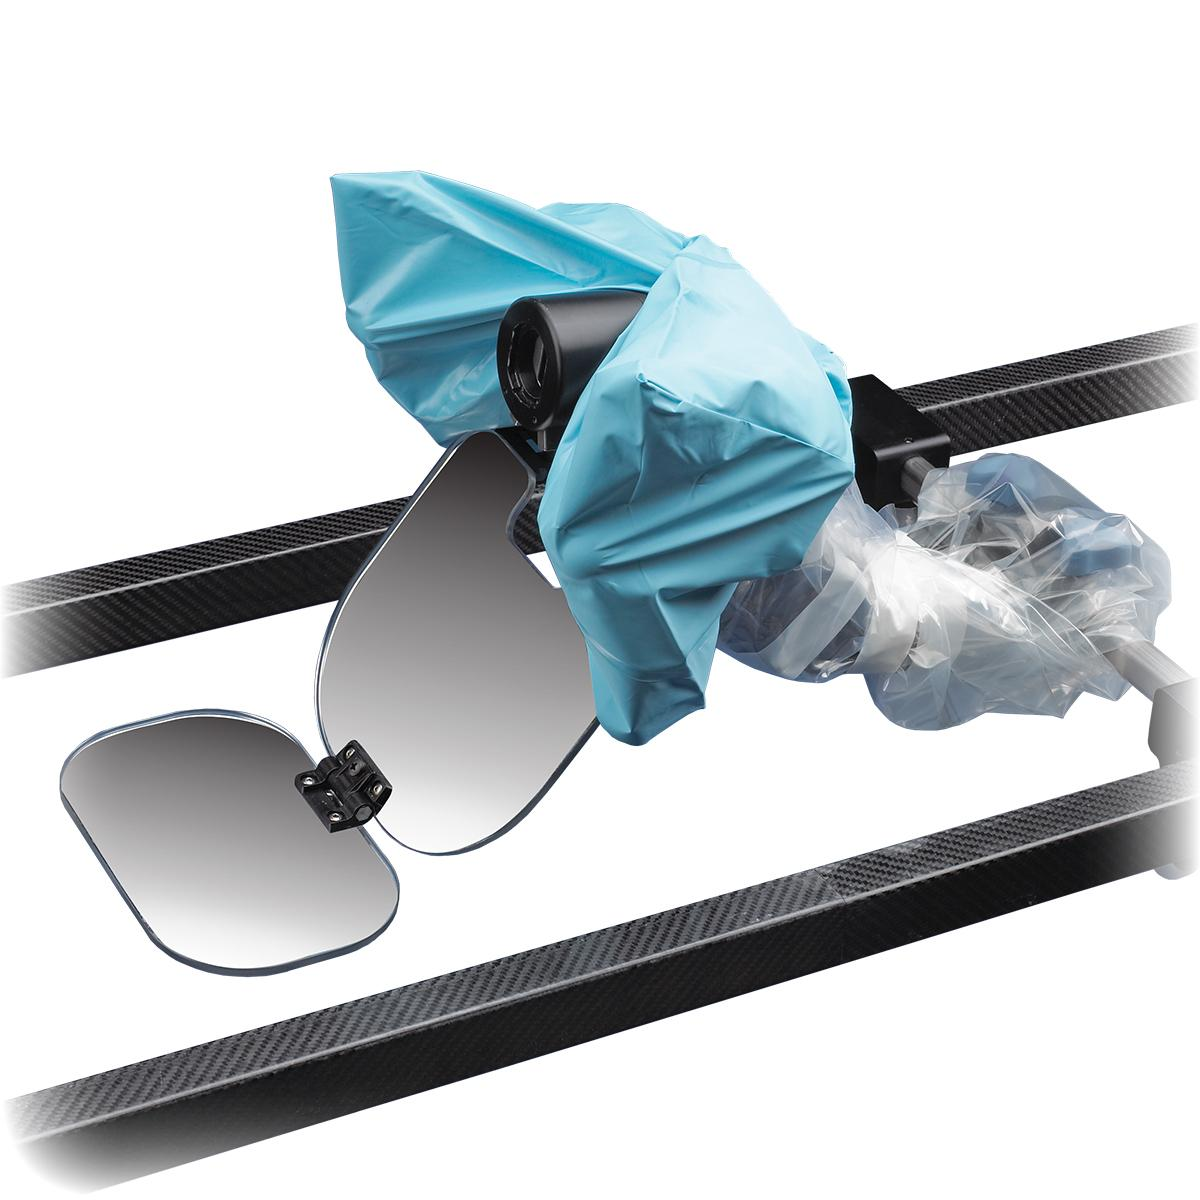 C-Flex Head Positioning System close view with disposable cover